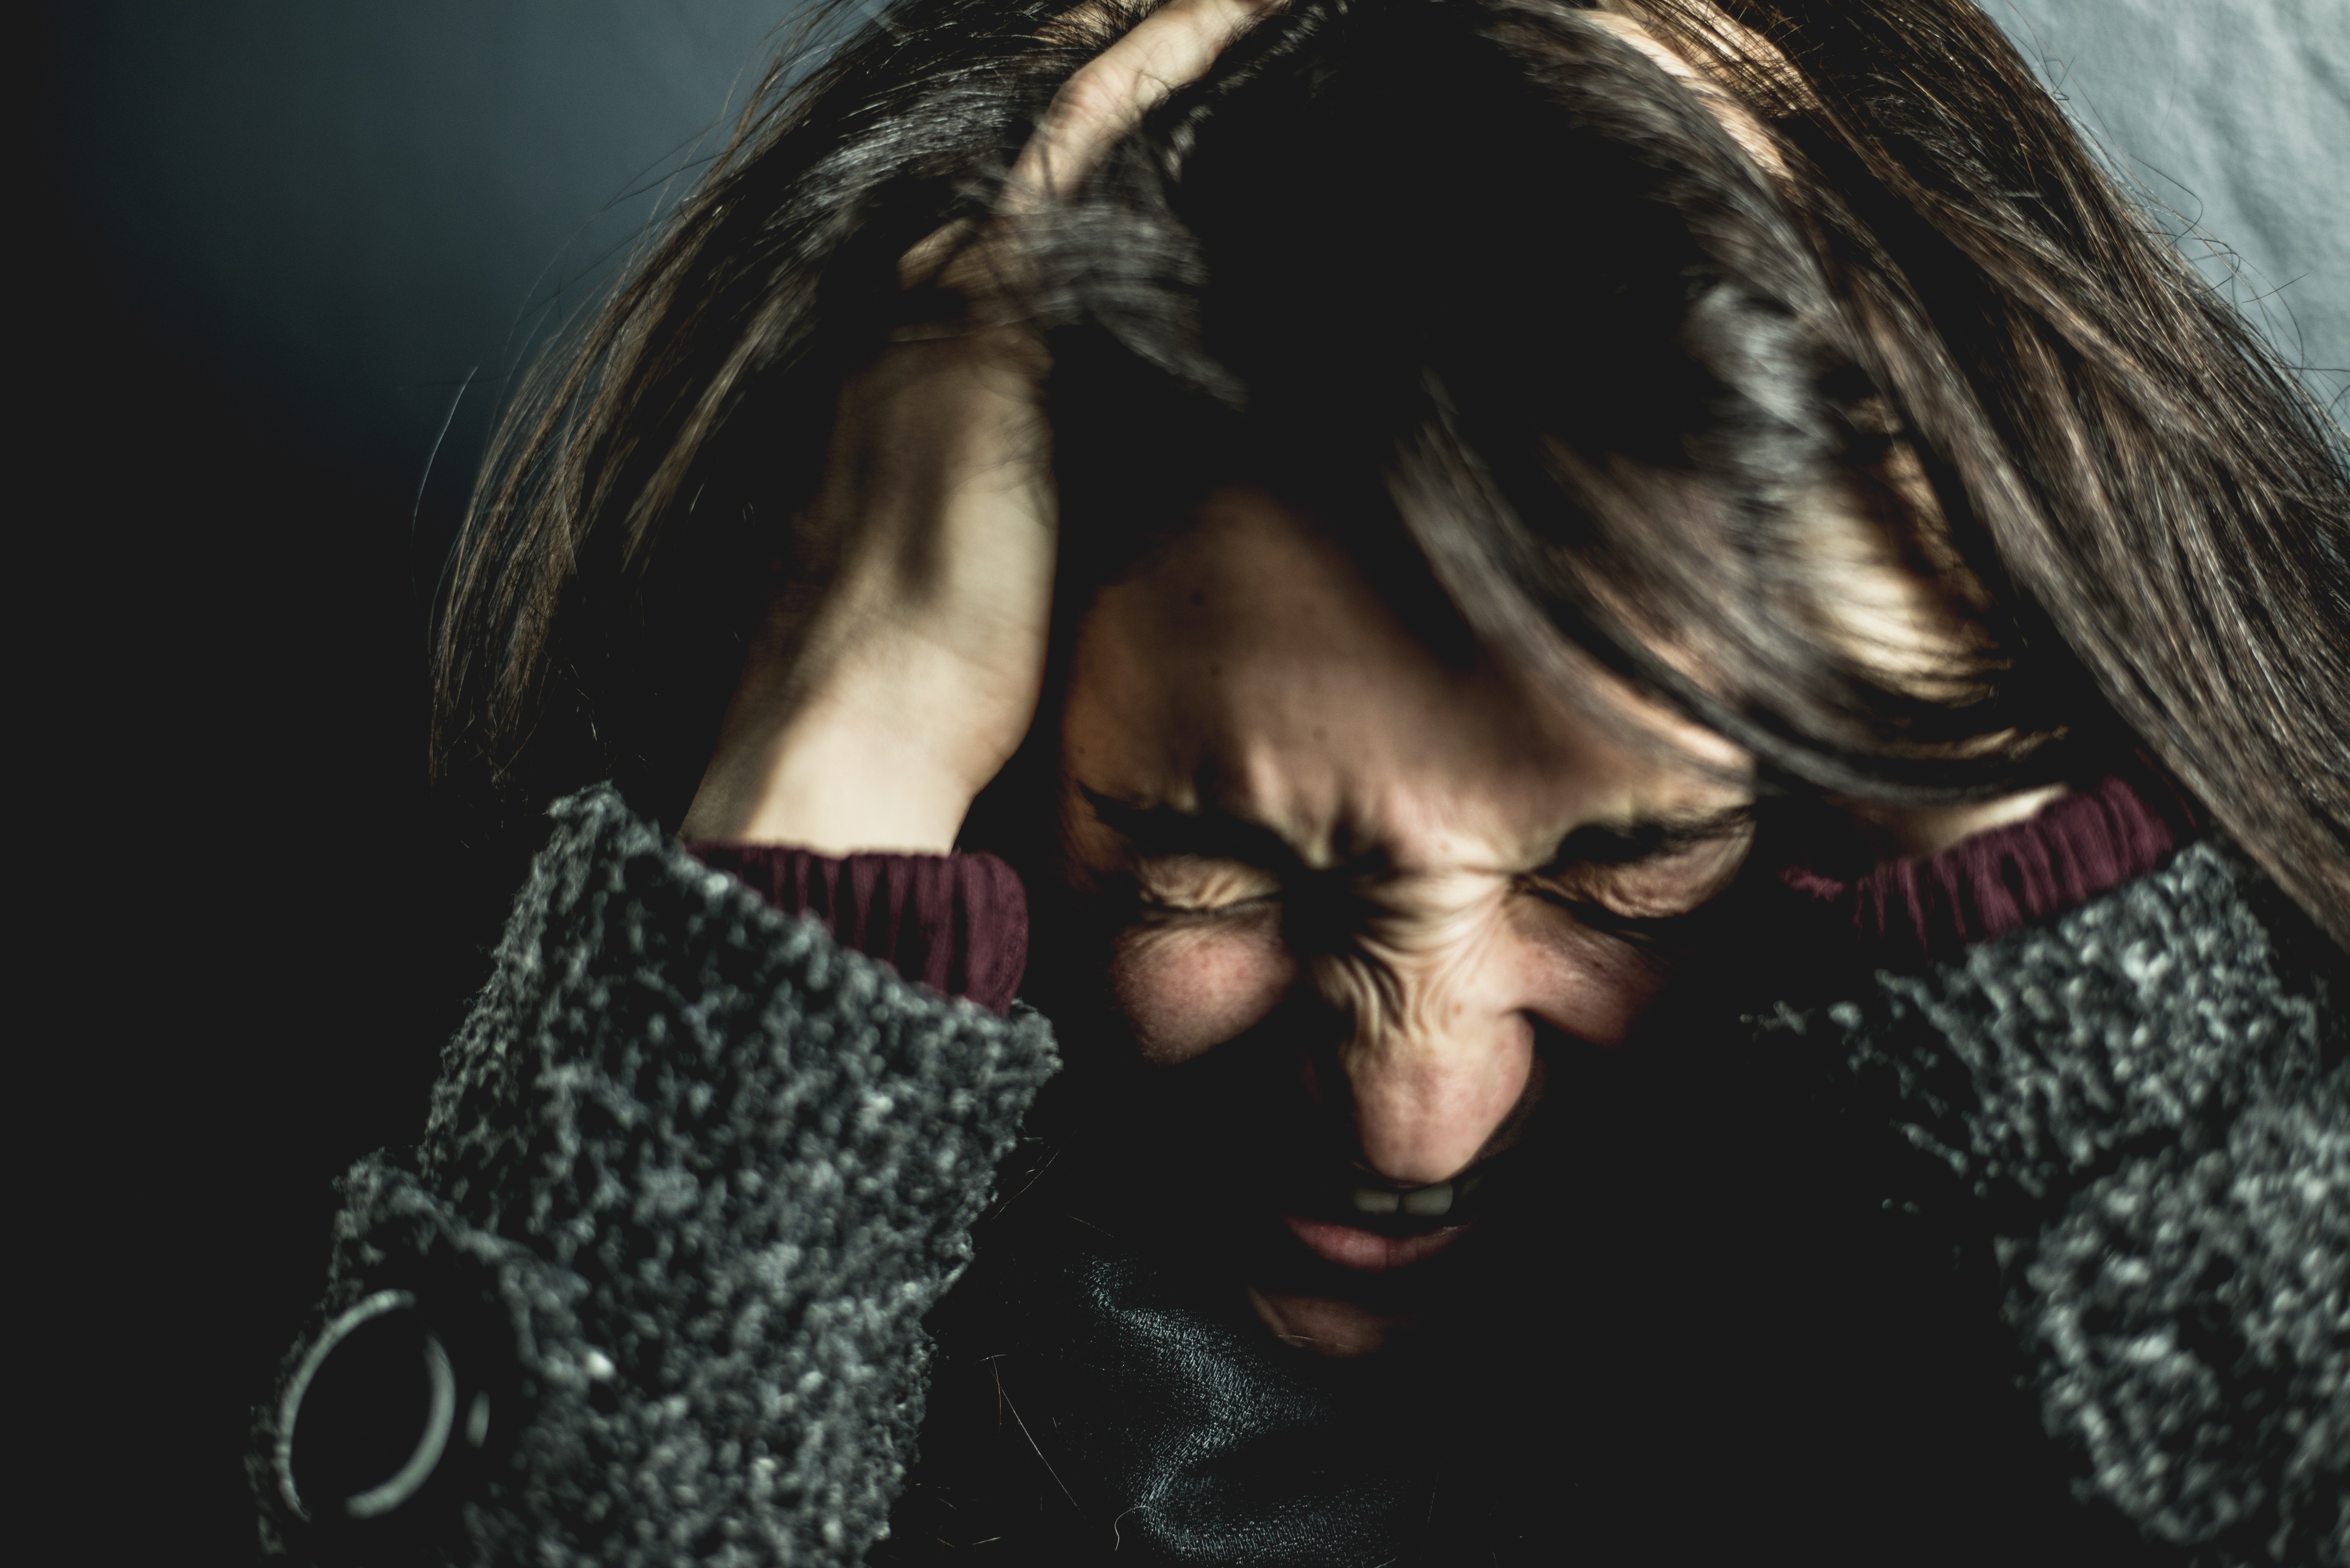 Infuriated woman holding her head | Photo: Pexels